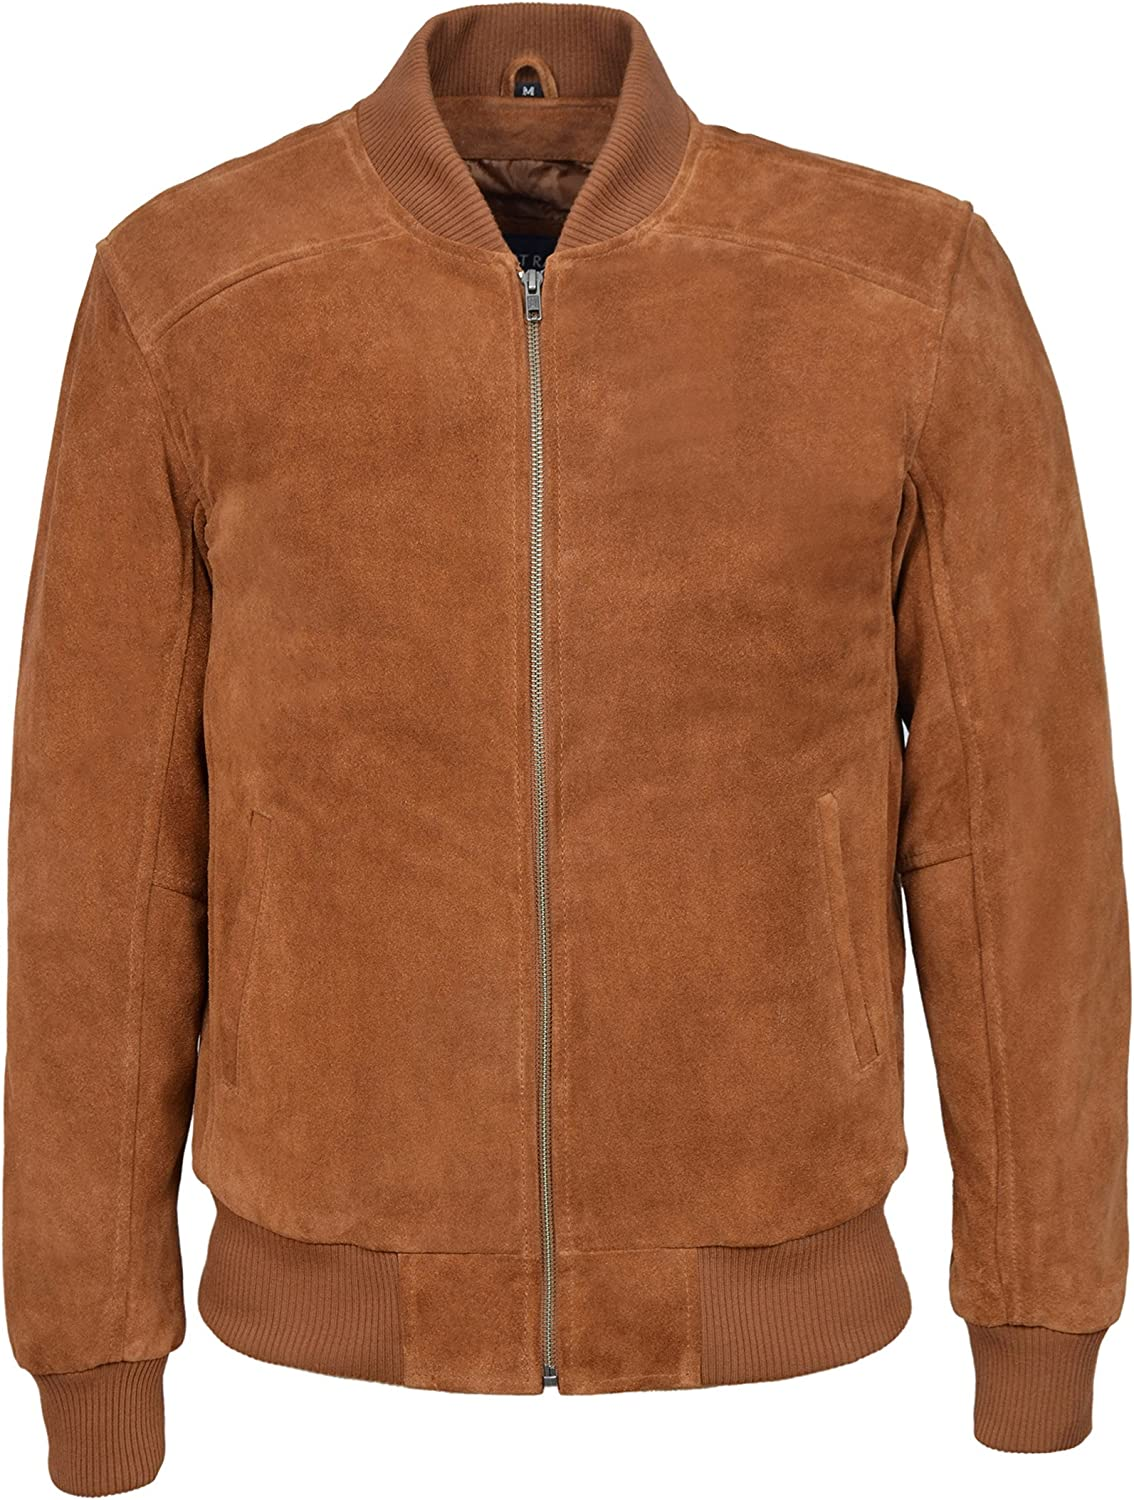 Smart Range 70's Classic Bomber Men's Tan Plain Suede Wax Biker Style Italian Fitted Real Leather Jacket 275-P